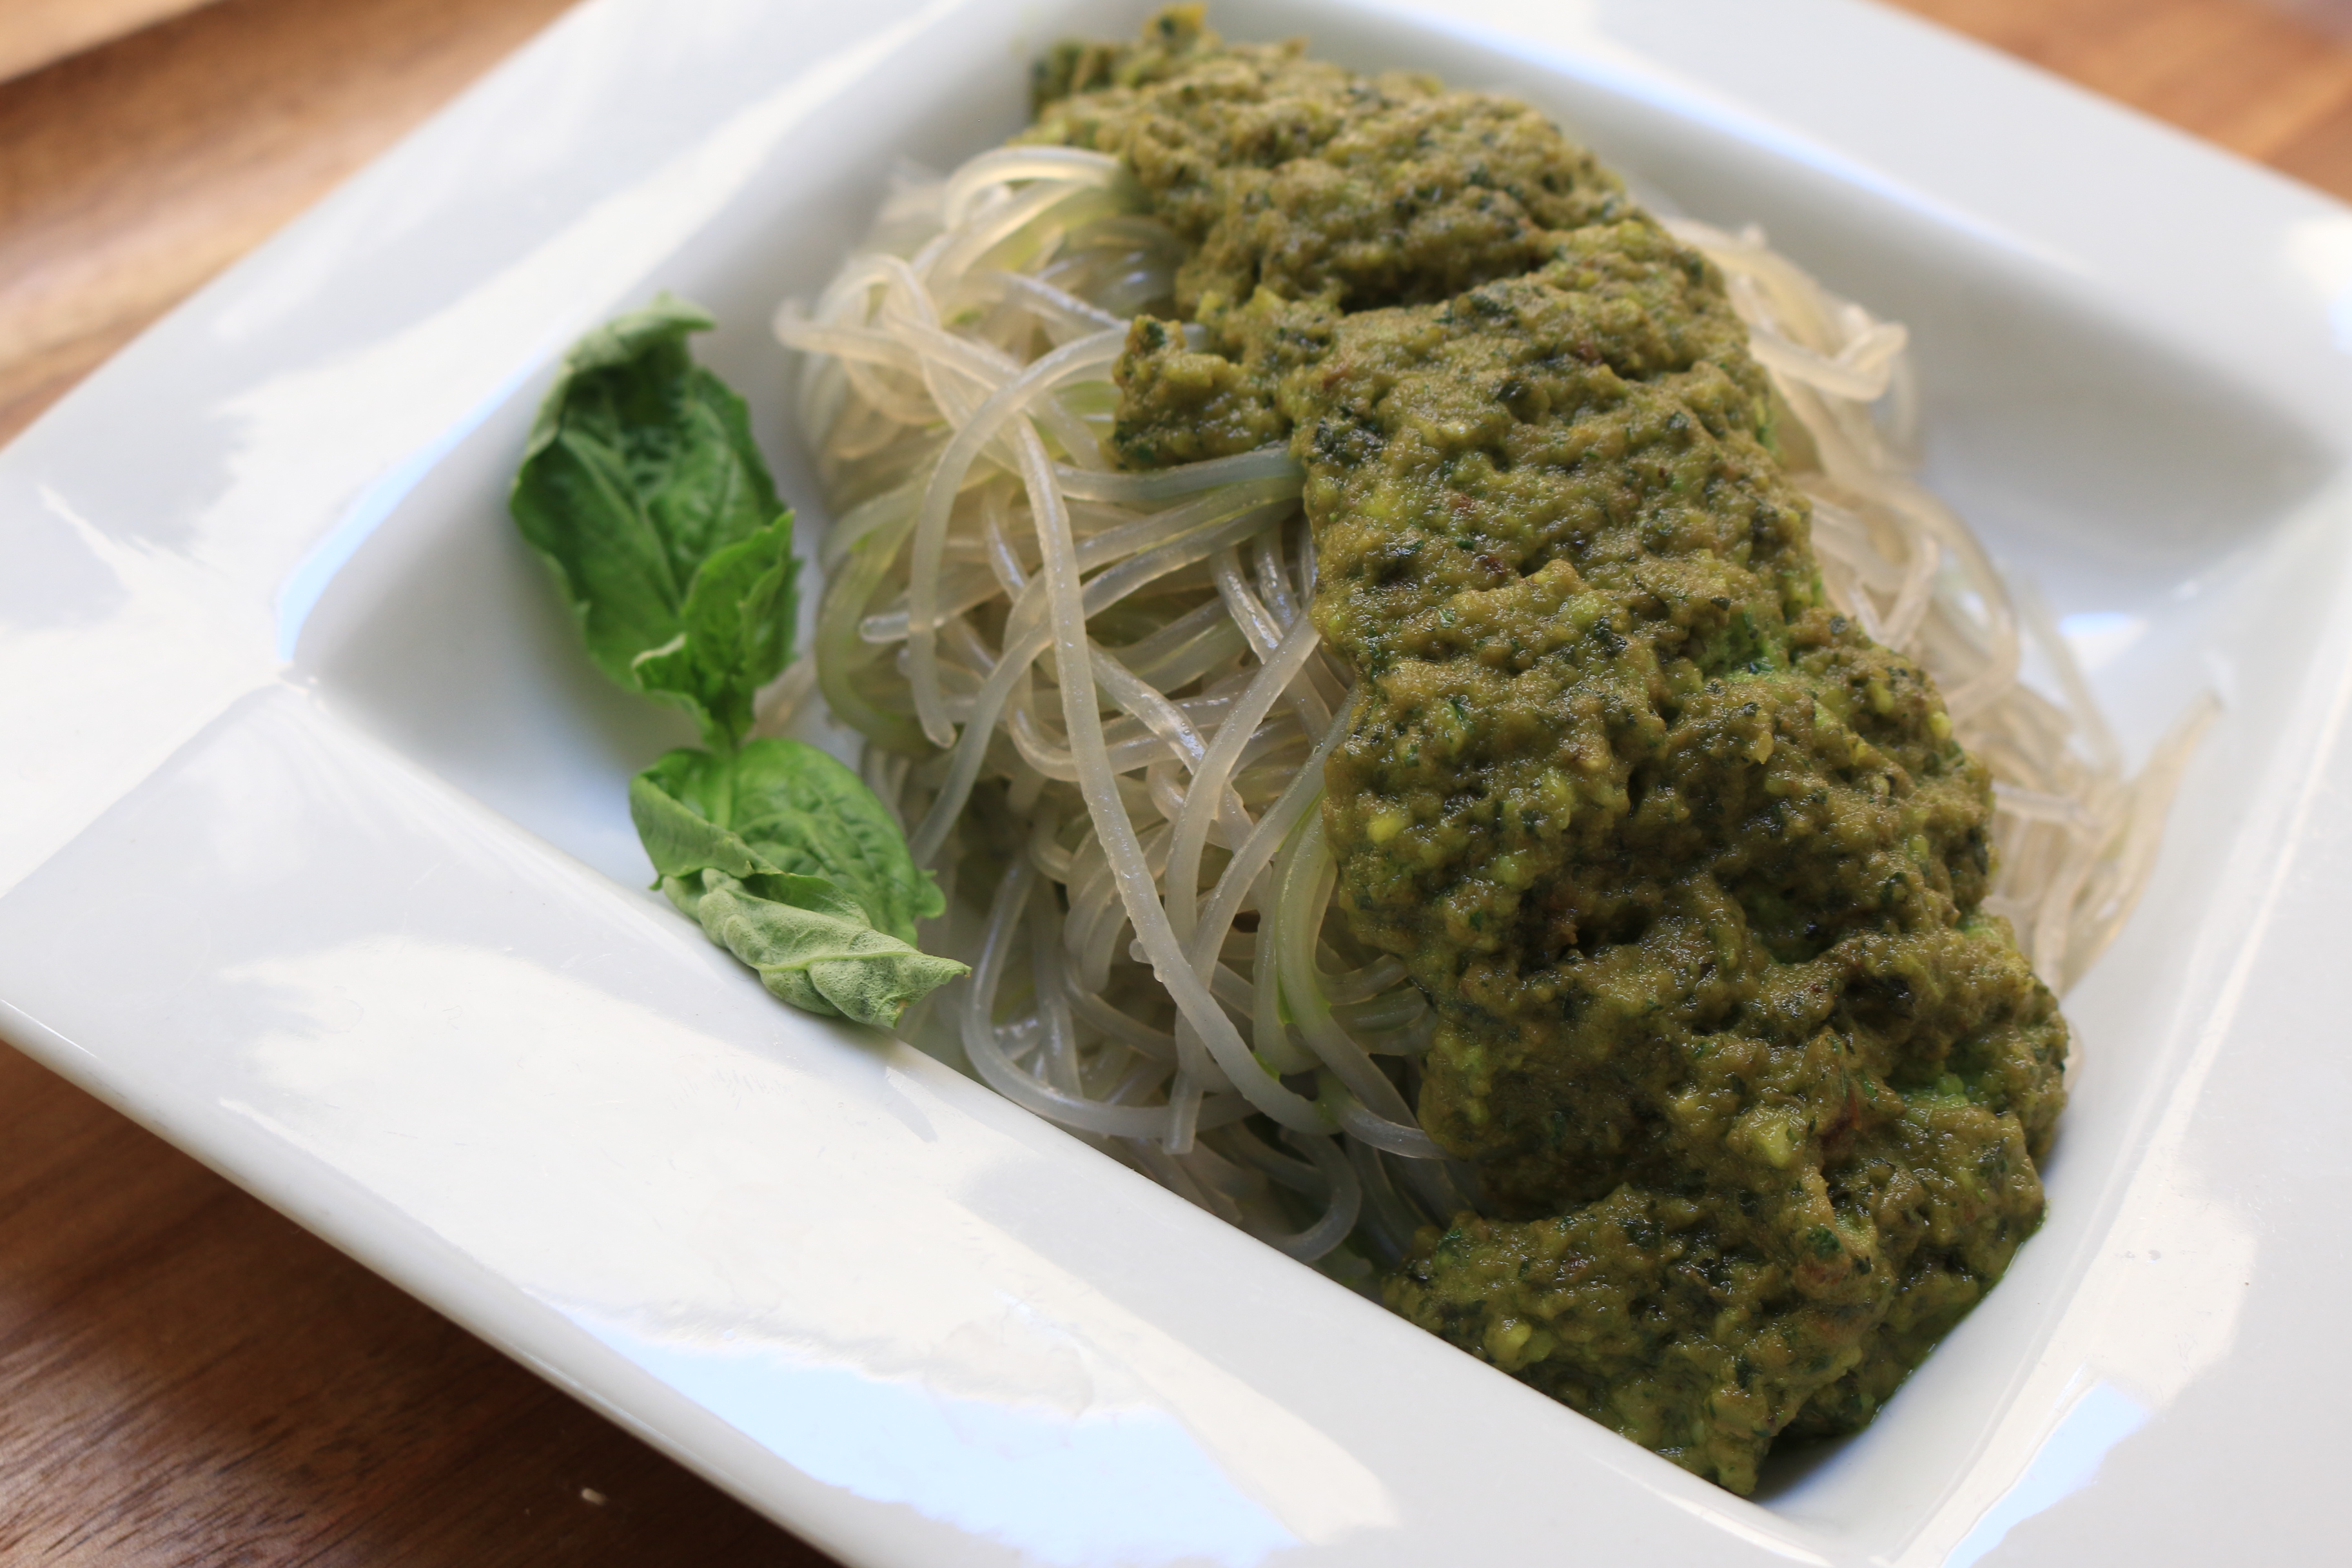 Fresh avocado is combined with fresh basil pesto to make the perfect italian flavor combo. Add it to a bed of sweet potato noodles for a quick and easy dinner.